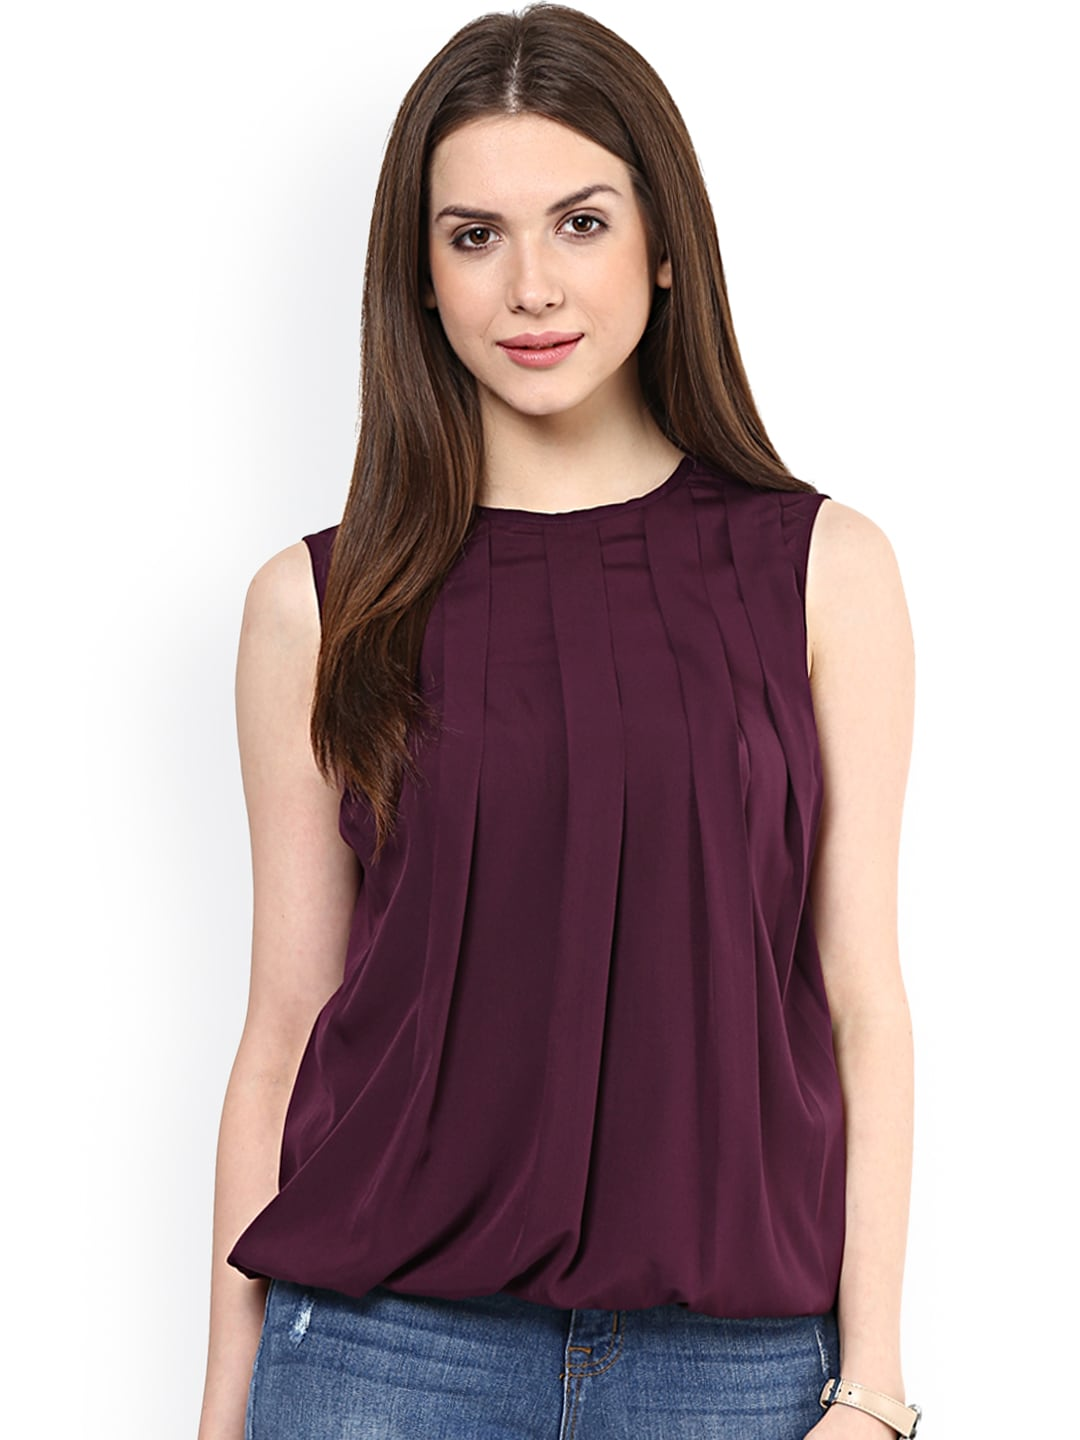 f054efcab98f9e Women Formal Tops - Buy Women Formal Tops online in India